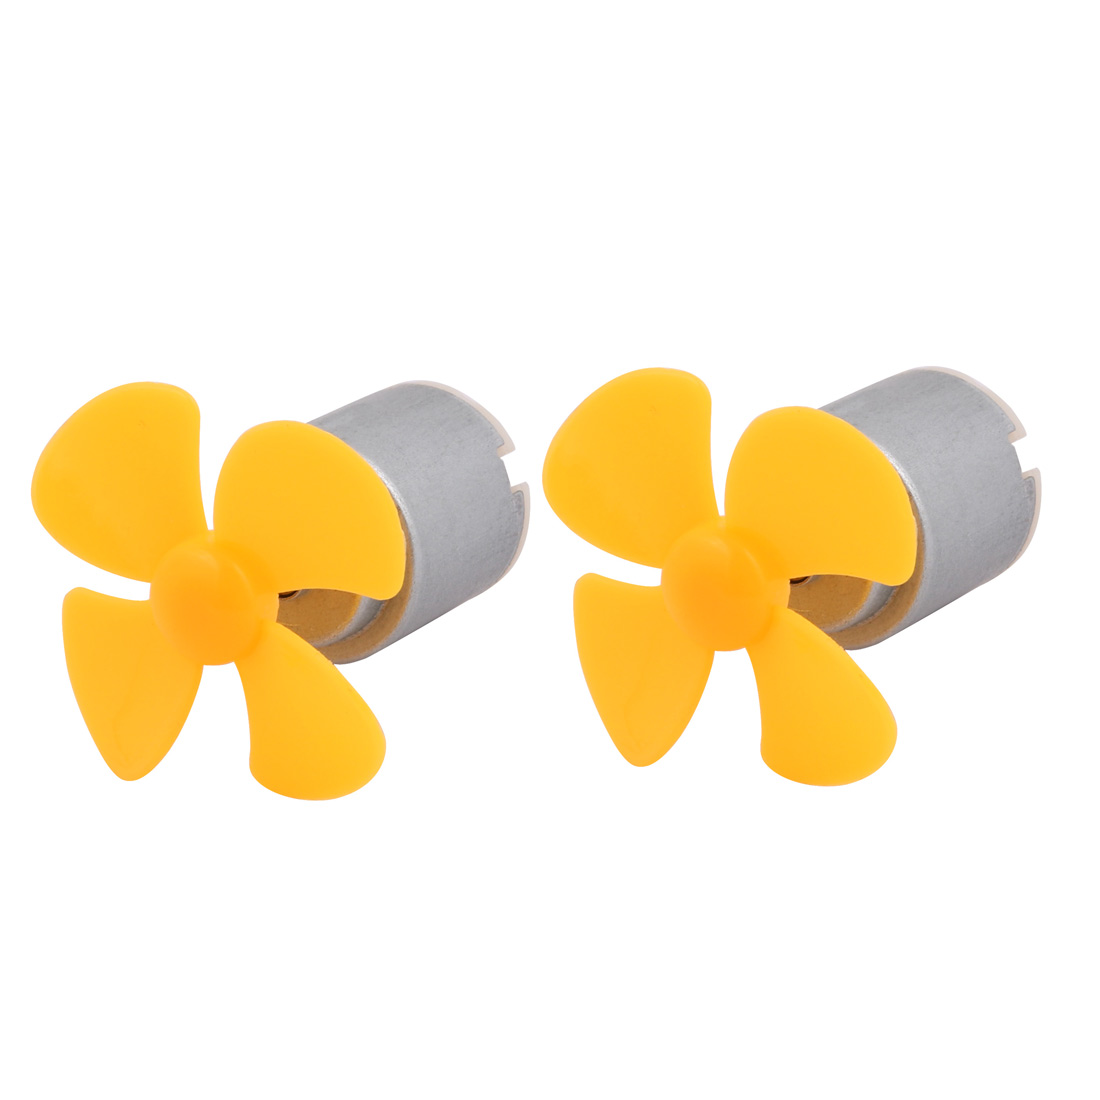 2pcs DC 3V 0.13A 20000RPM Strong Force Motor 4 Vanes 40mm Yellow Propeller for RC Aircraft